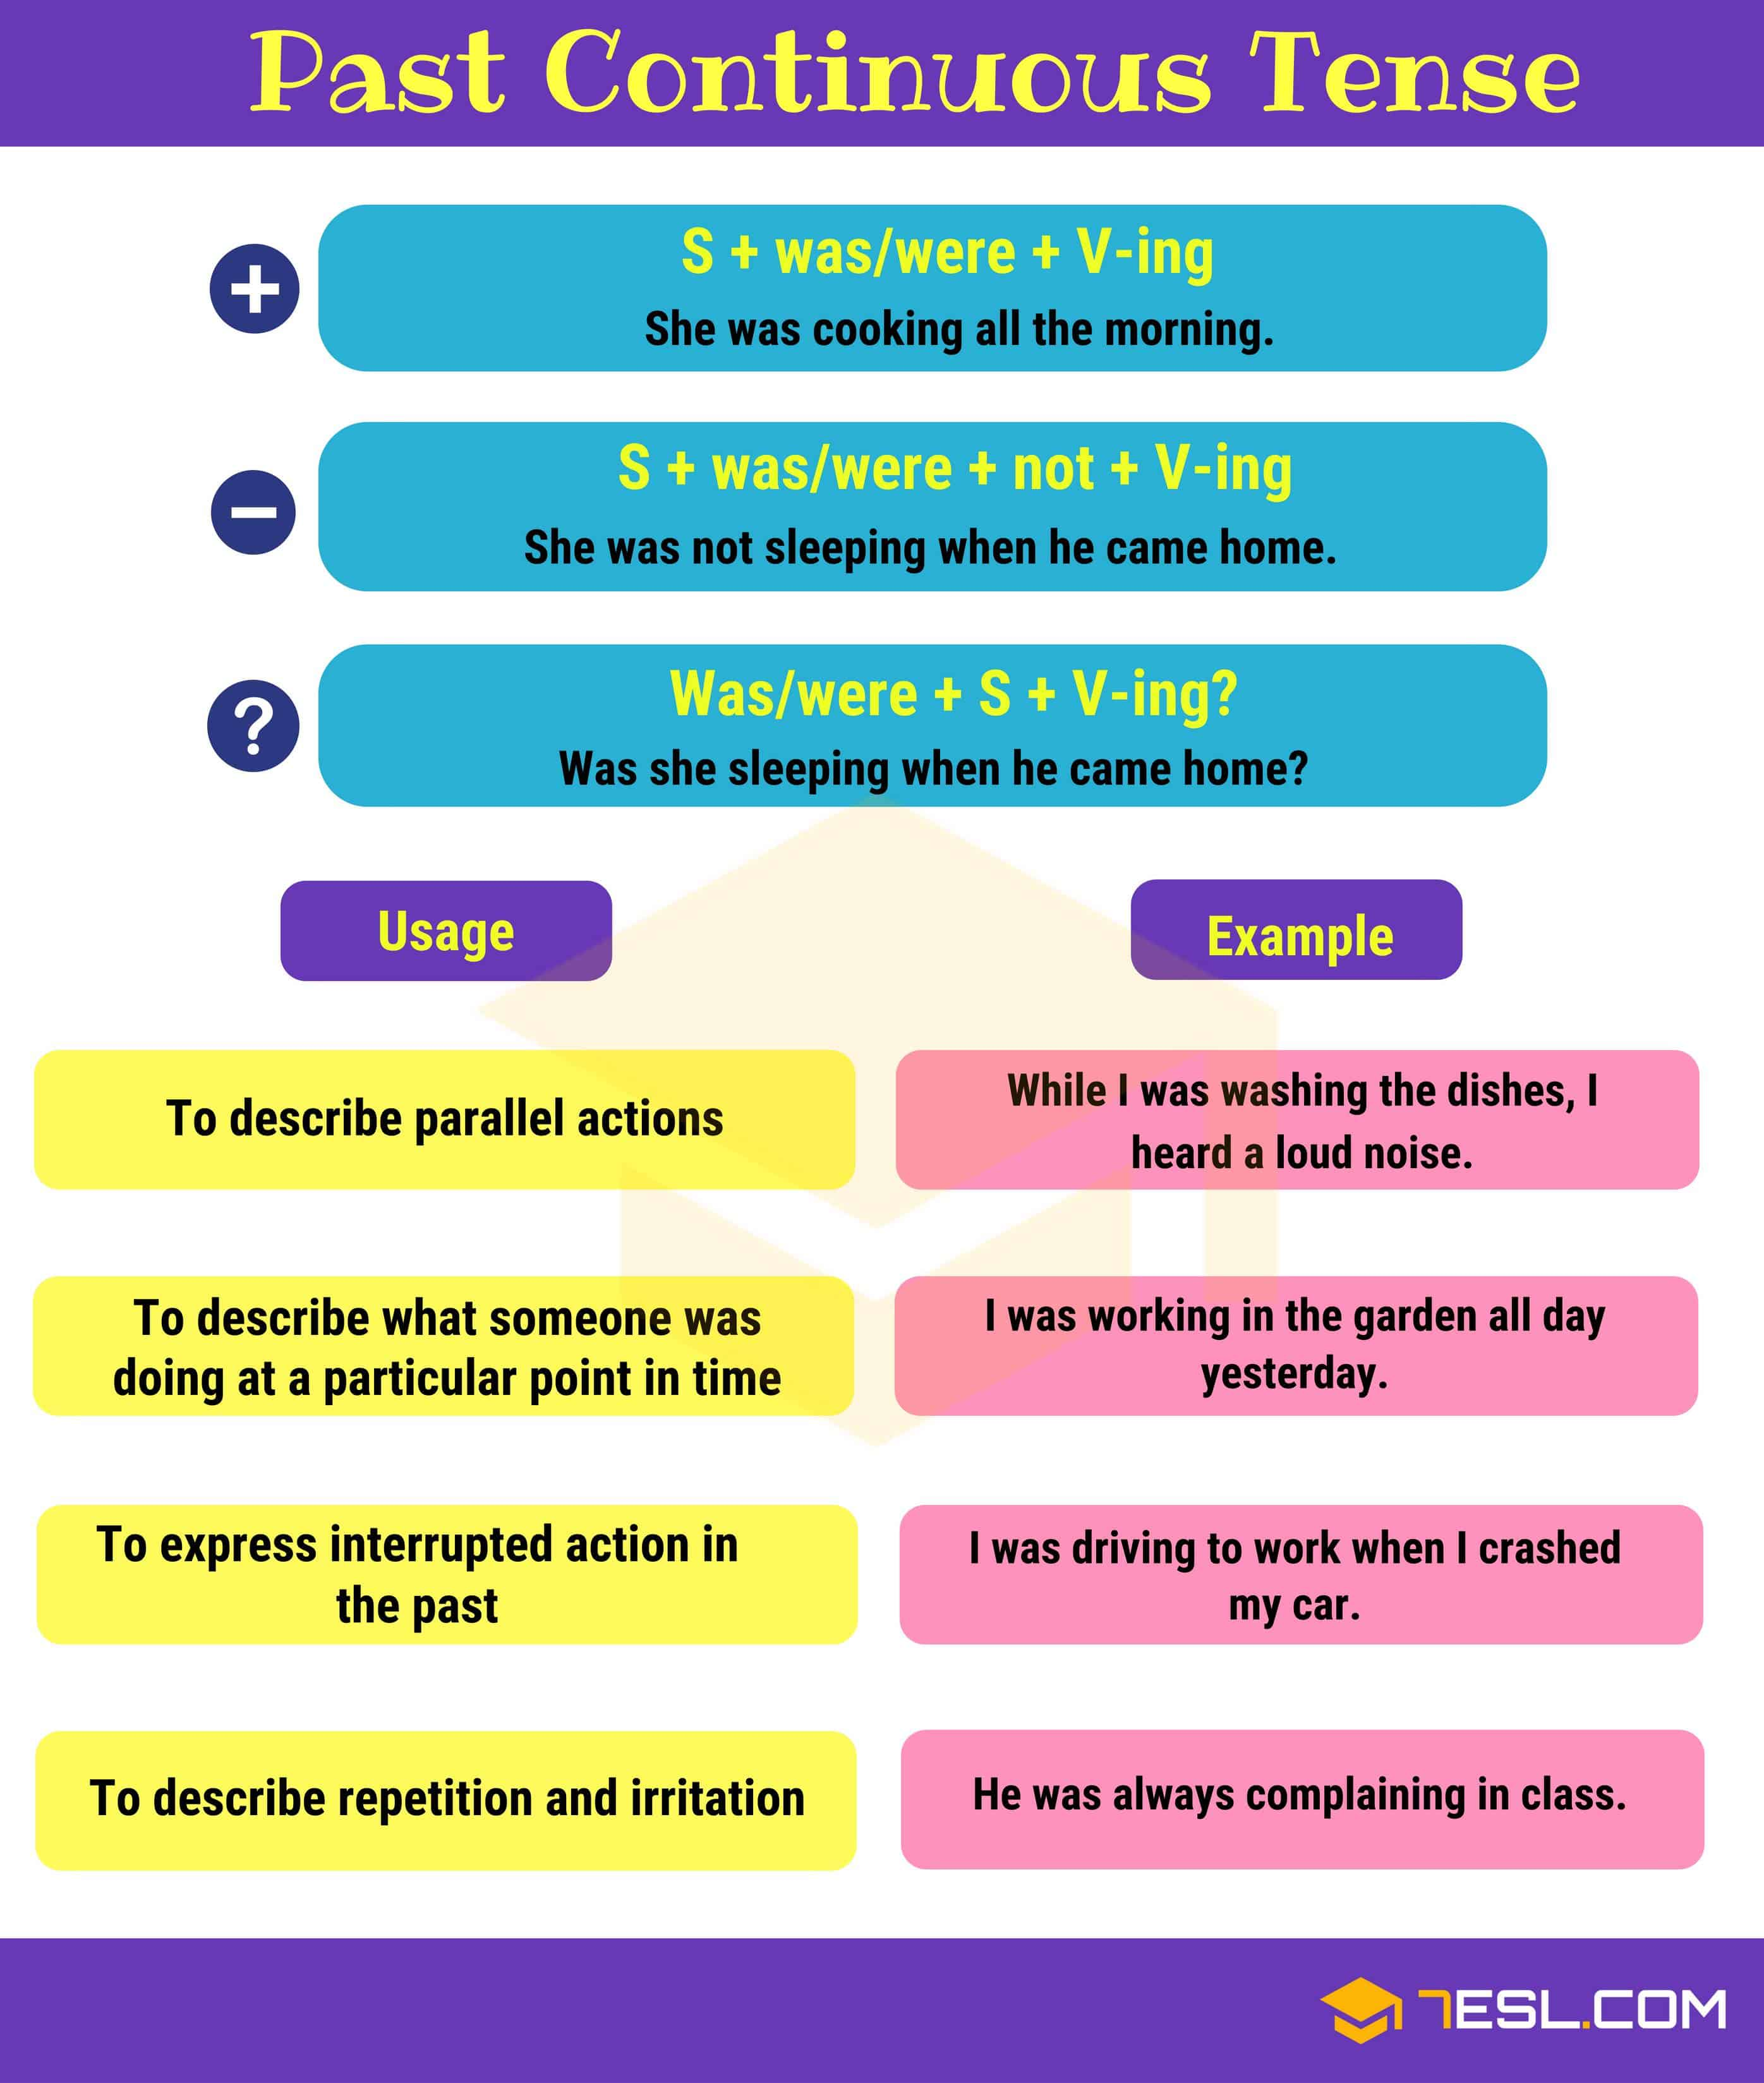 Past Continuous Tense Grammar Rules And Examples